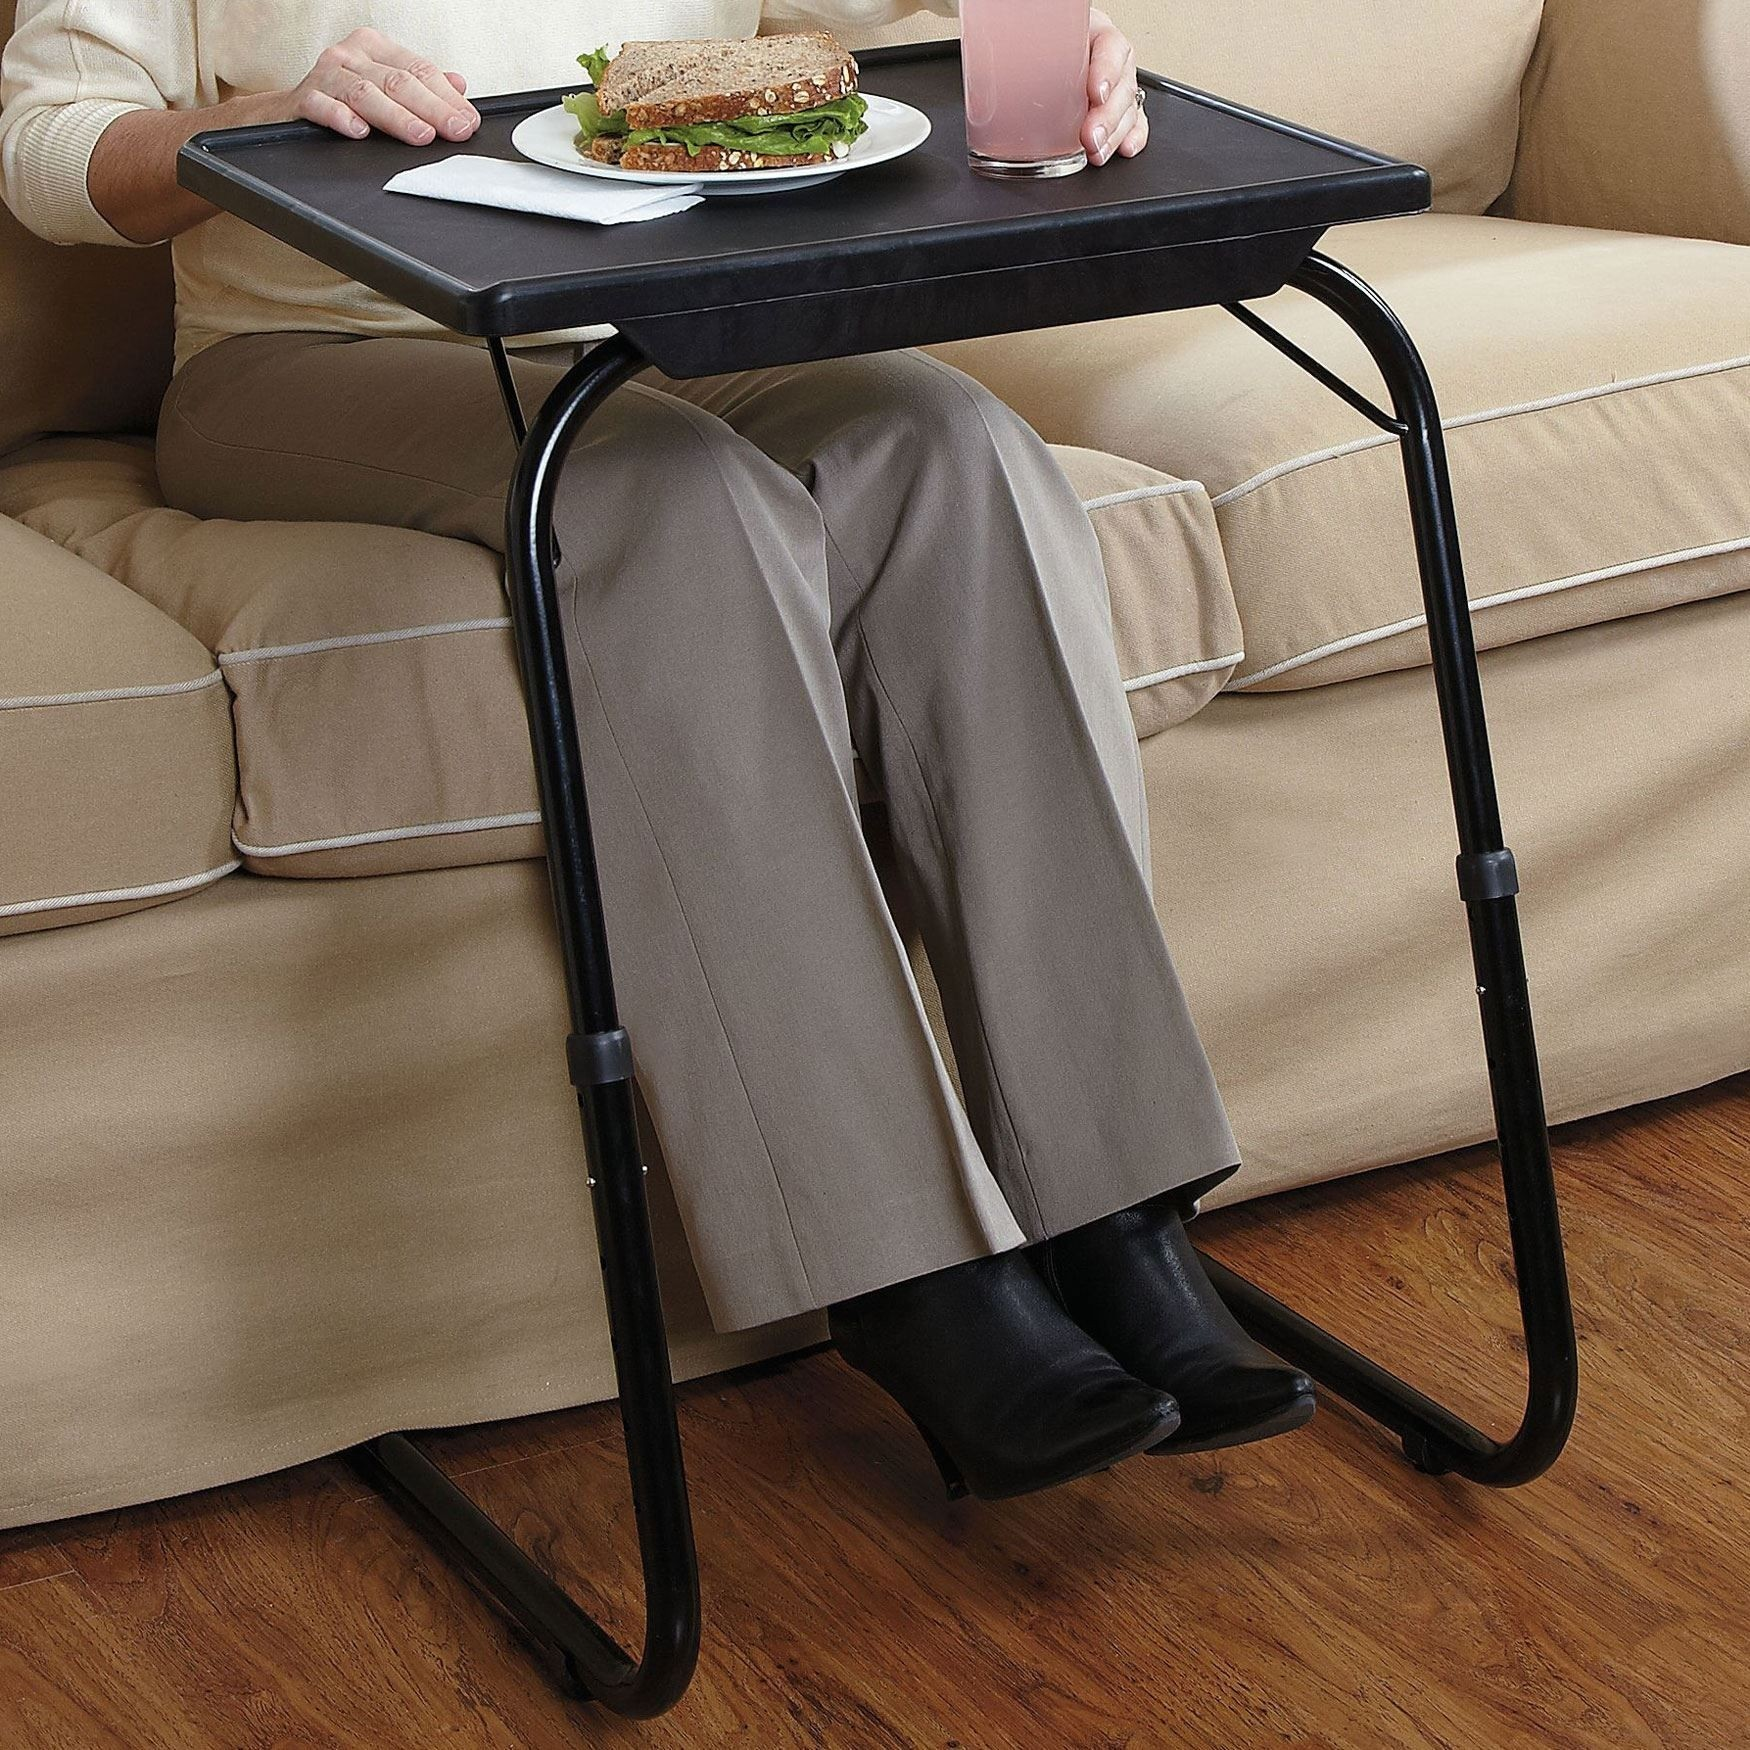 How To Make A Collapsible Table